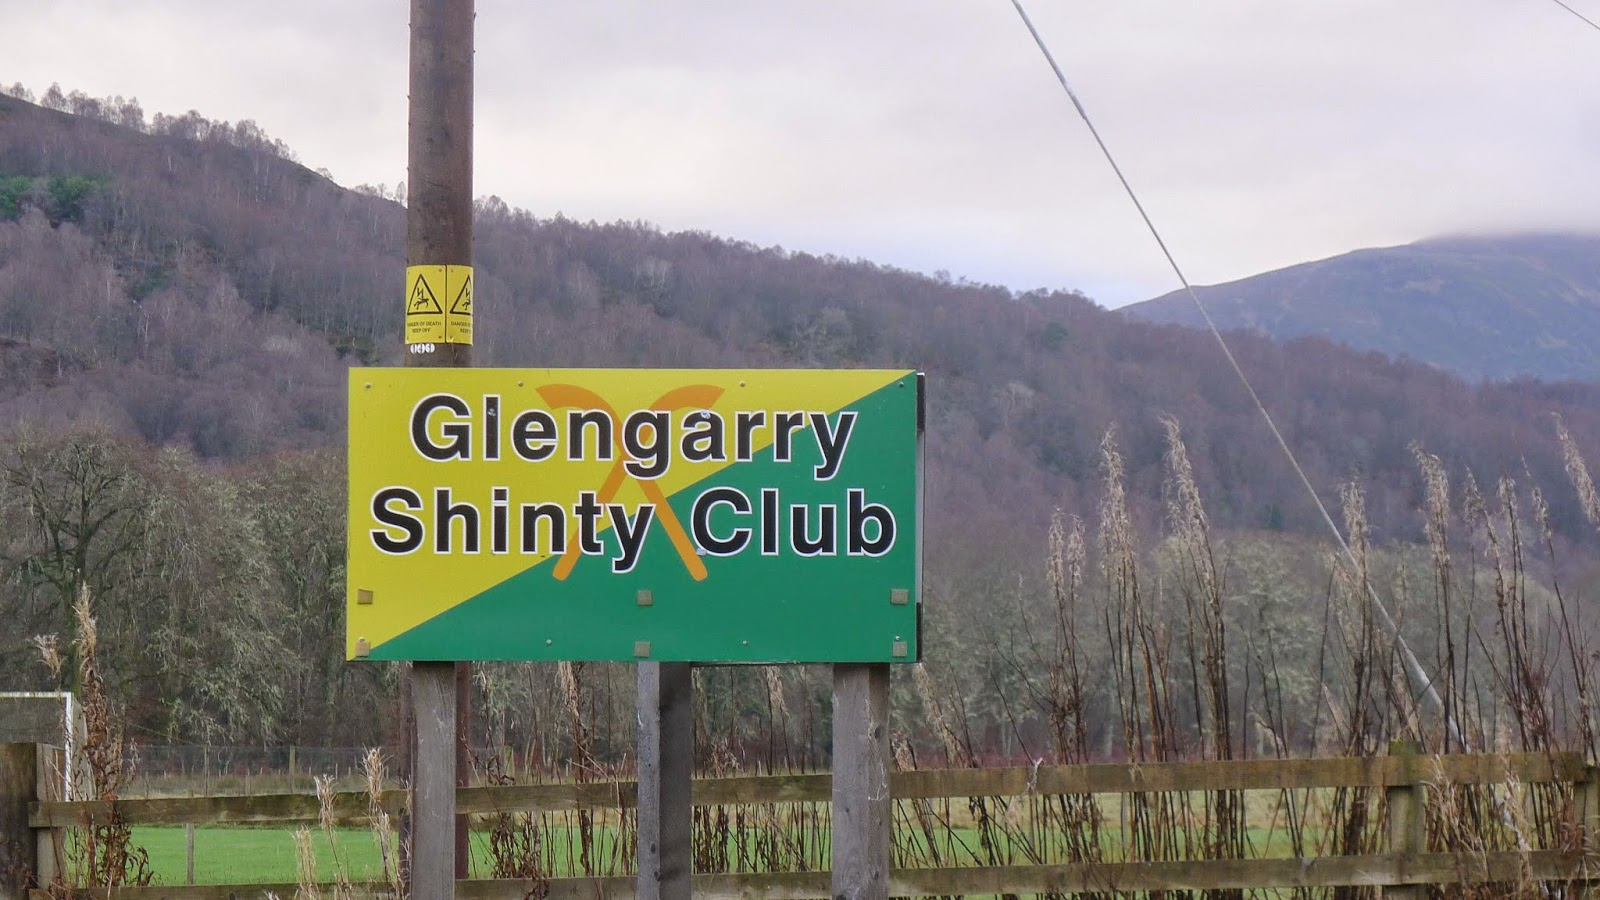 Glengarry Shinty Club, 29 November 2014